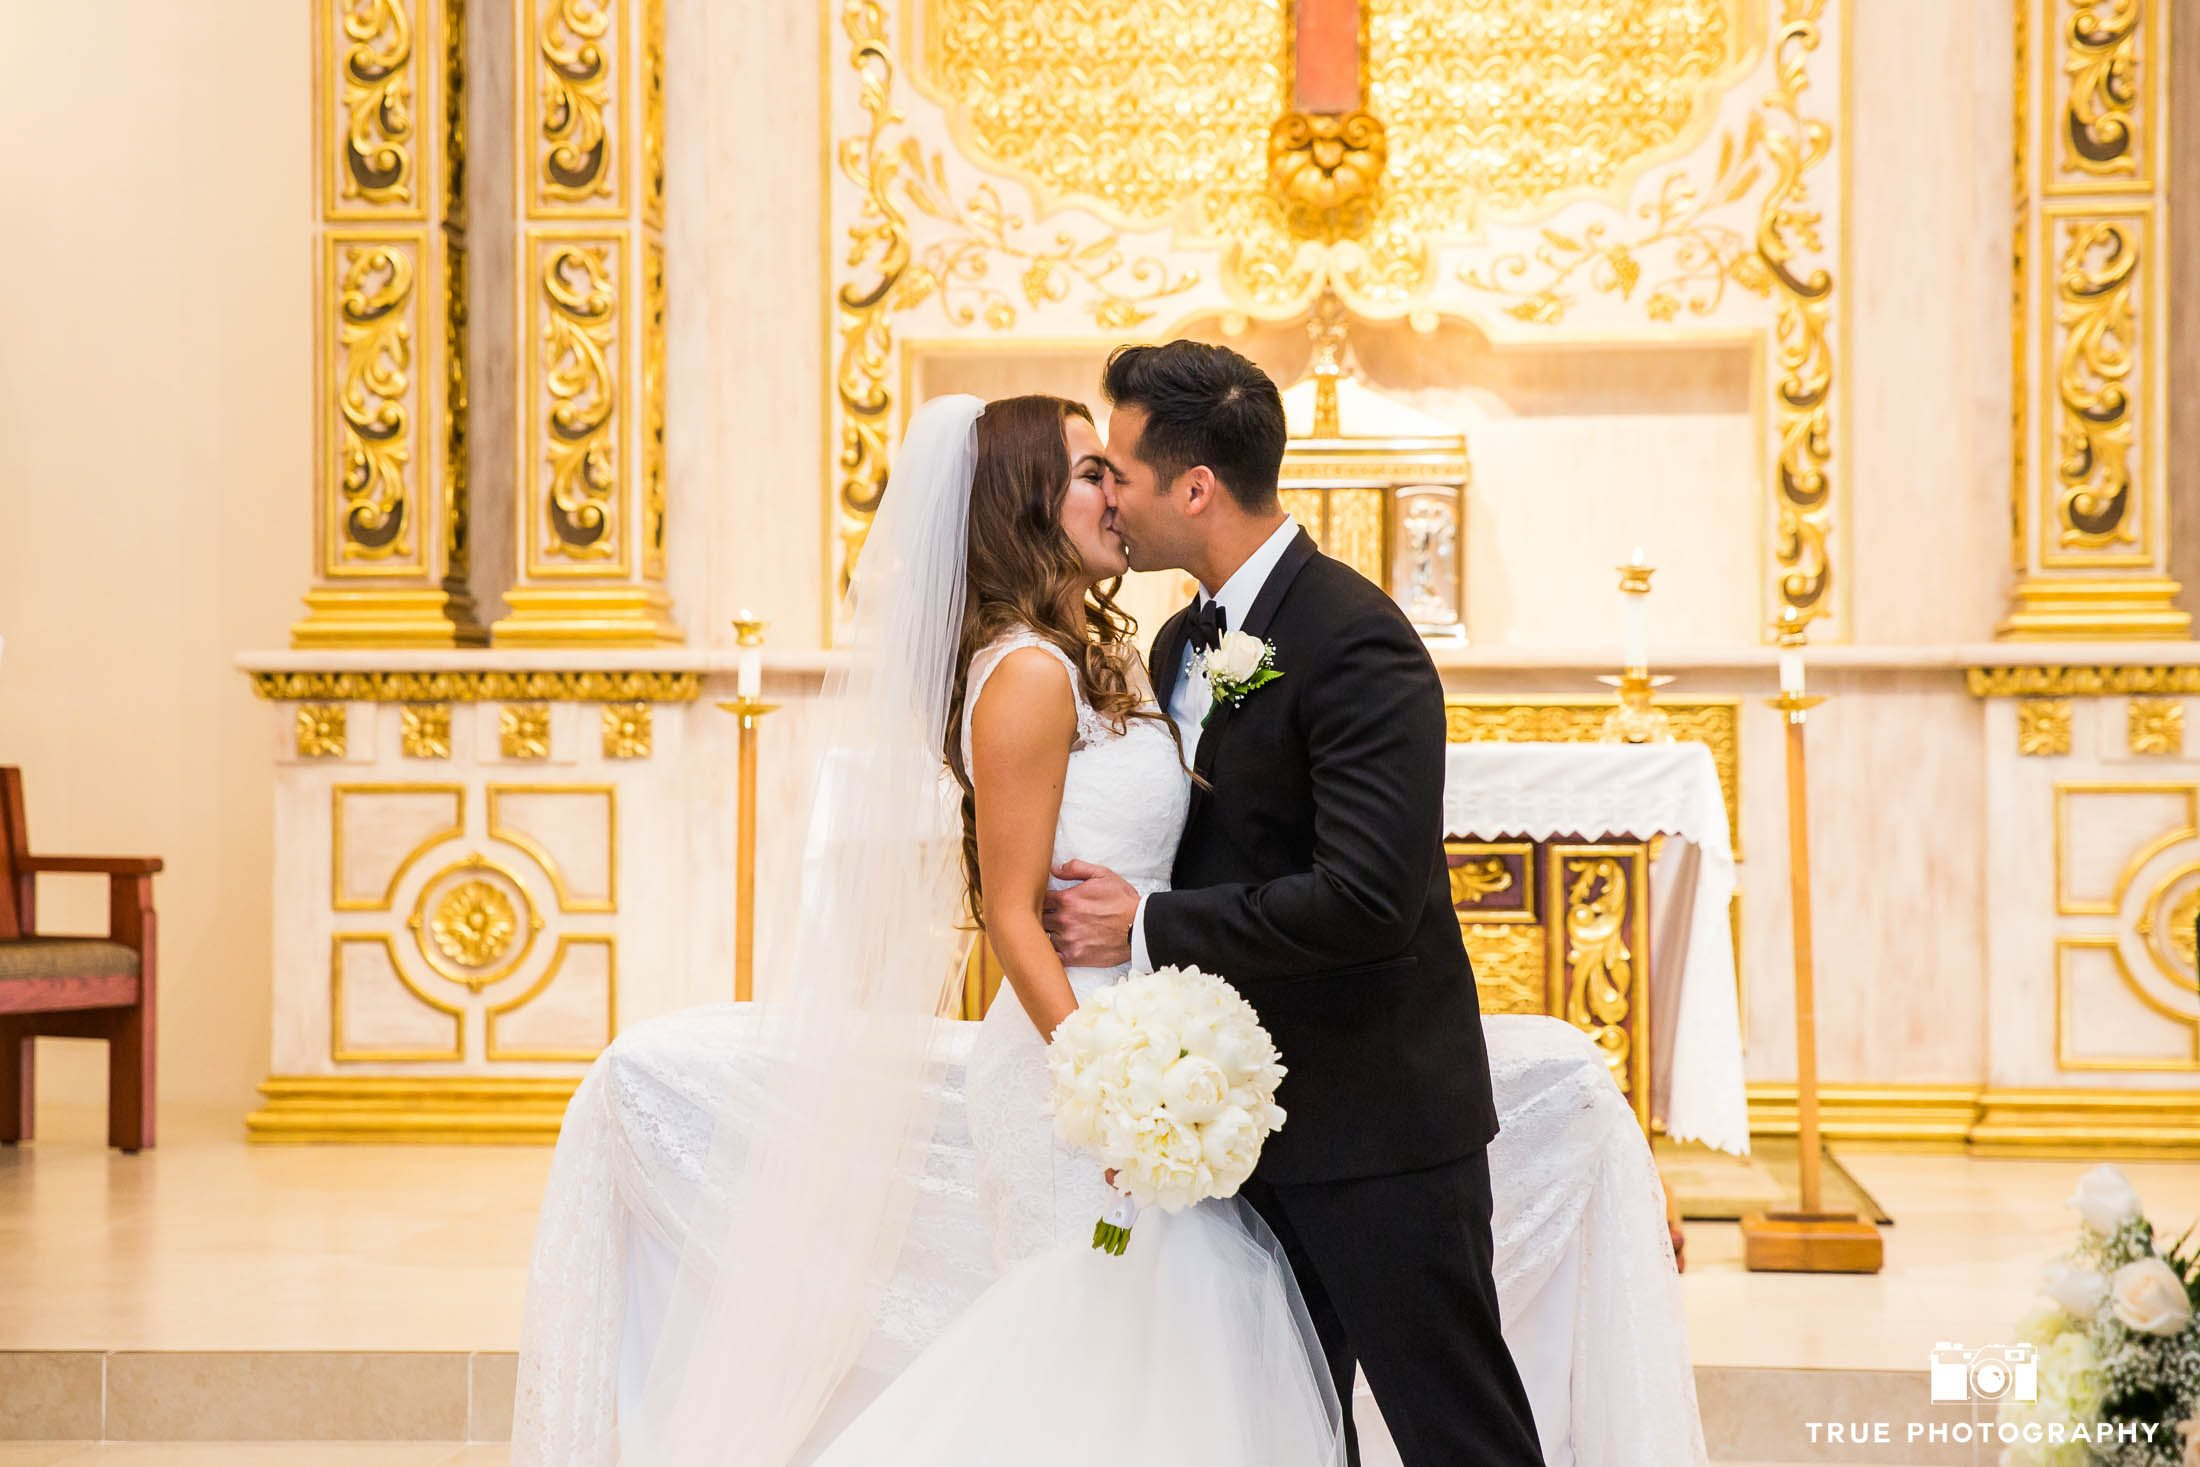 Bride and Groom share romantic First Kiss during Catholic church ceremony at Our Lady of Guadalupe in Chula Vista